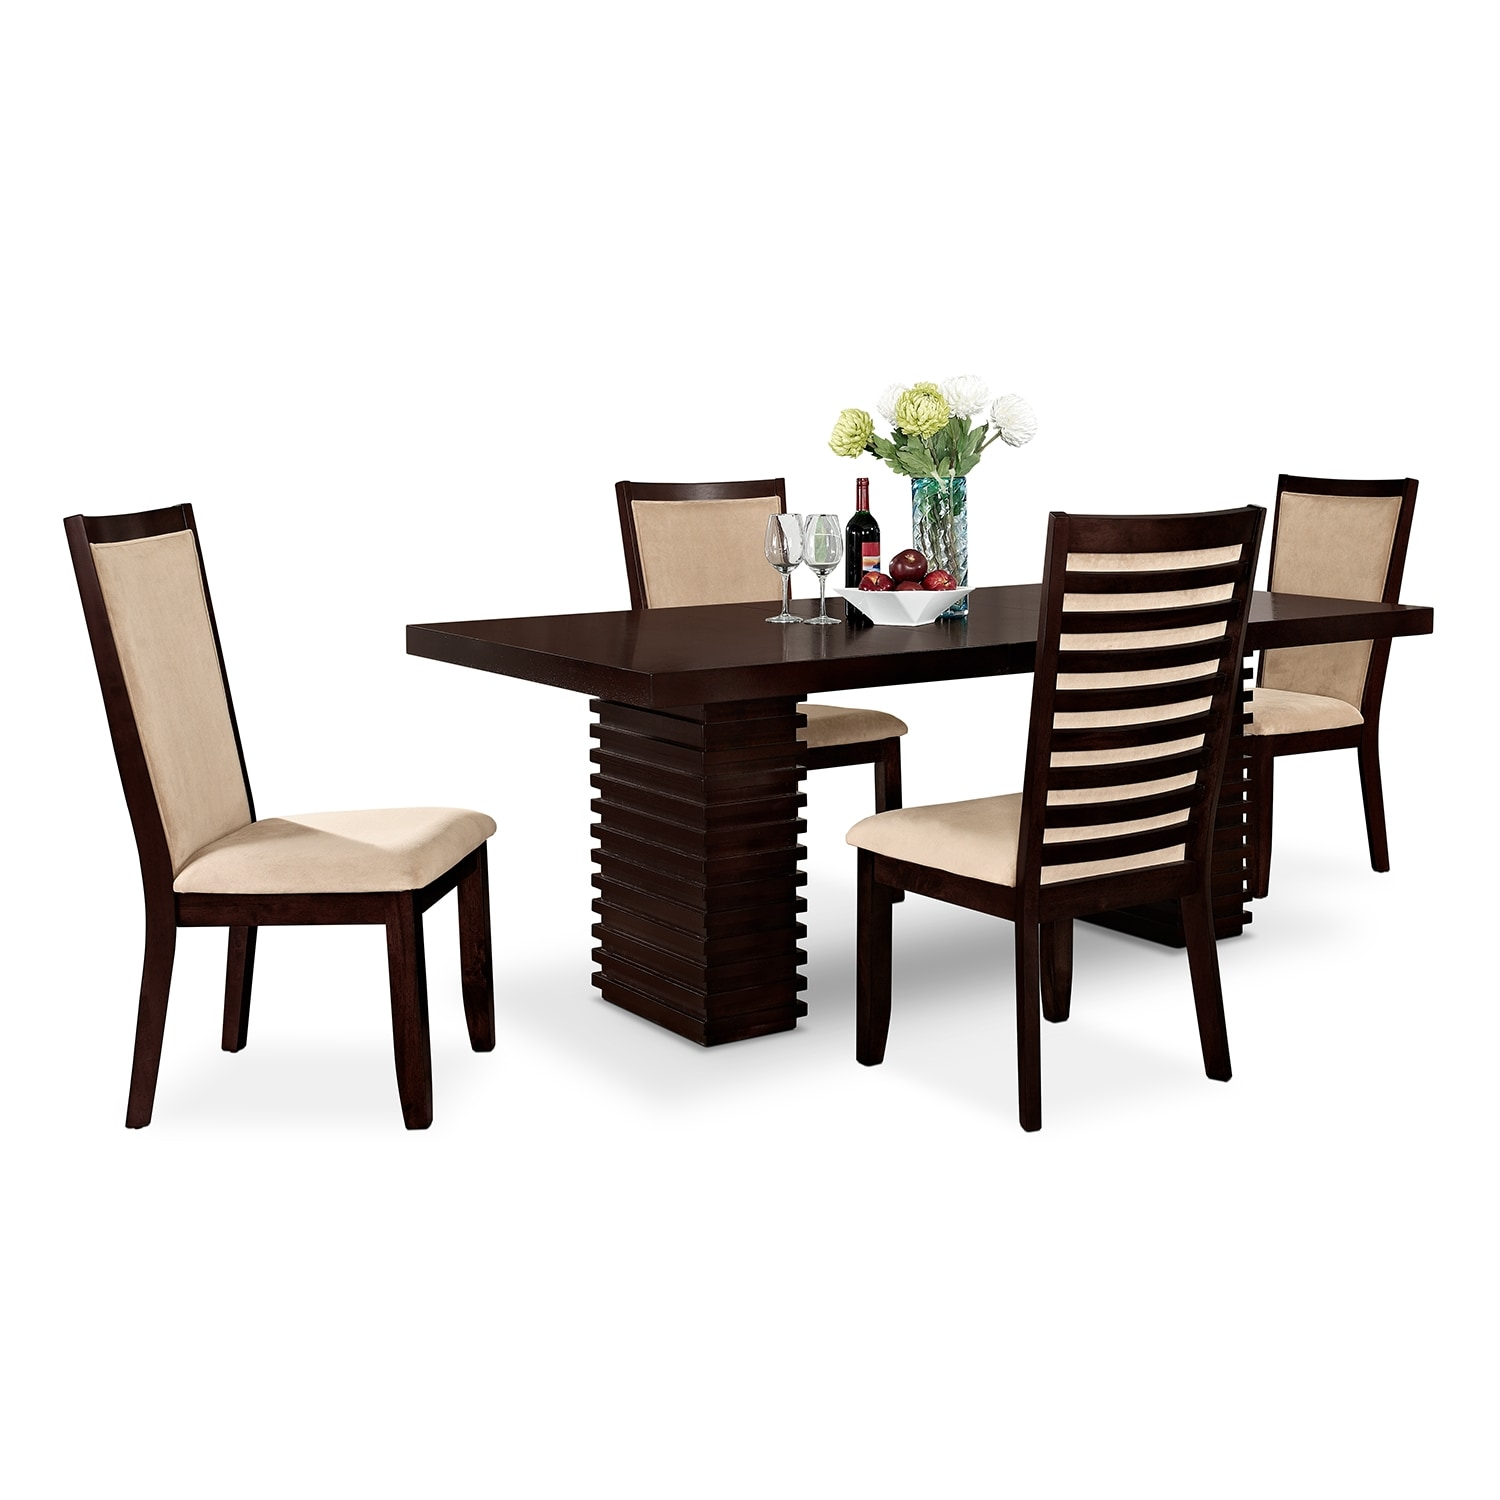 dining room furniture paragon table and 4 chairs merlot and camel